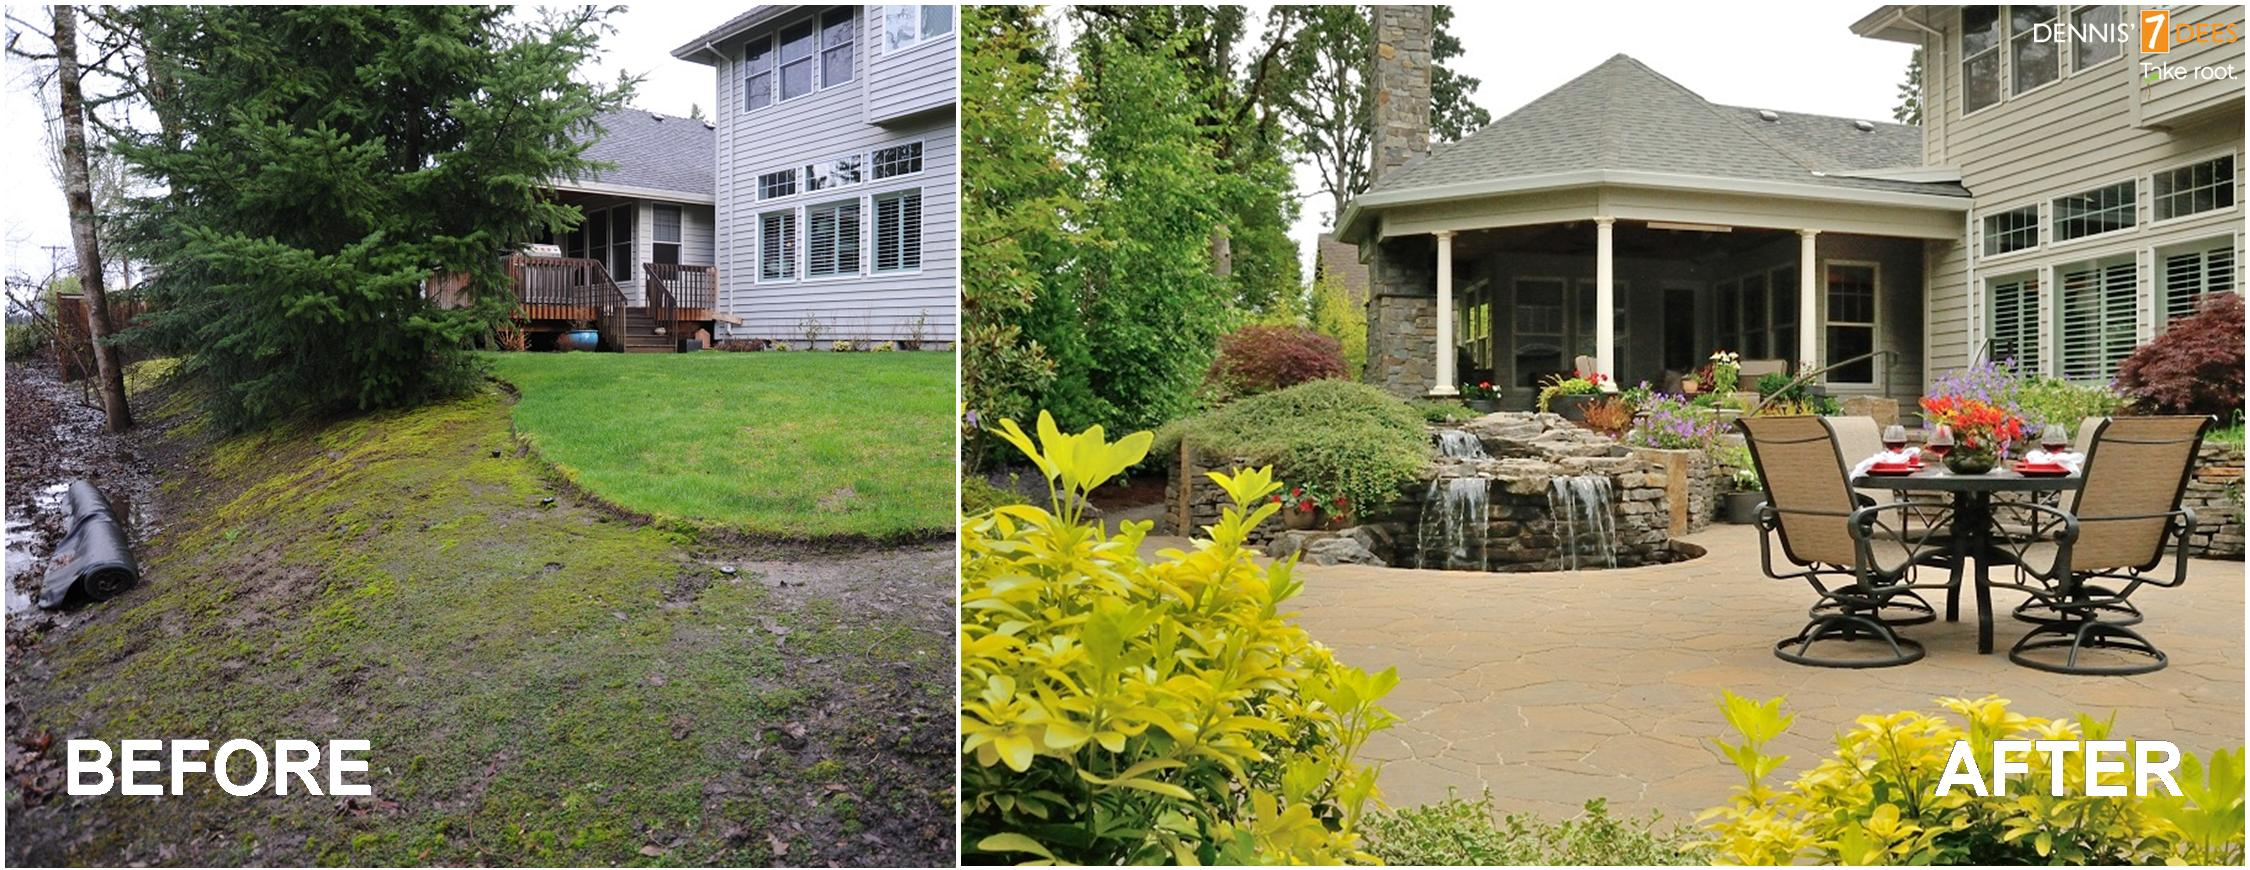 backyard-remodel-before-and-after_13944_2250_870